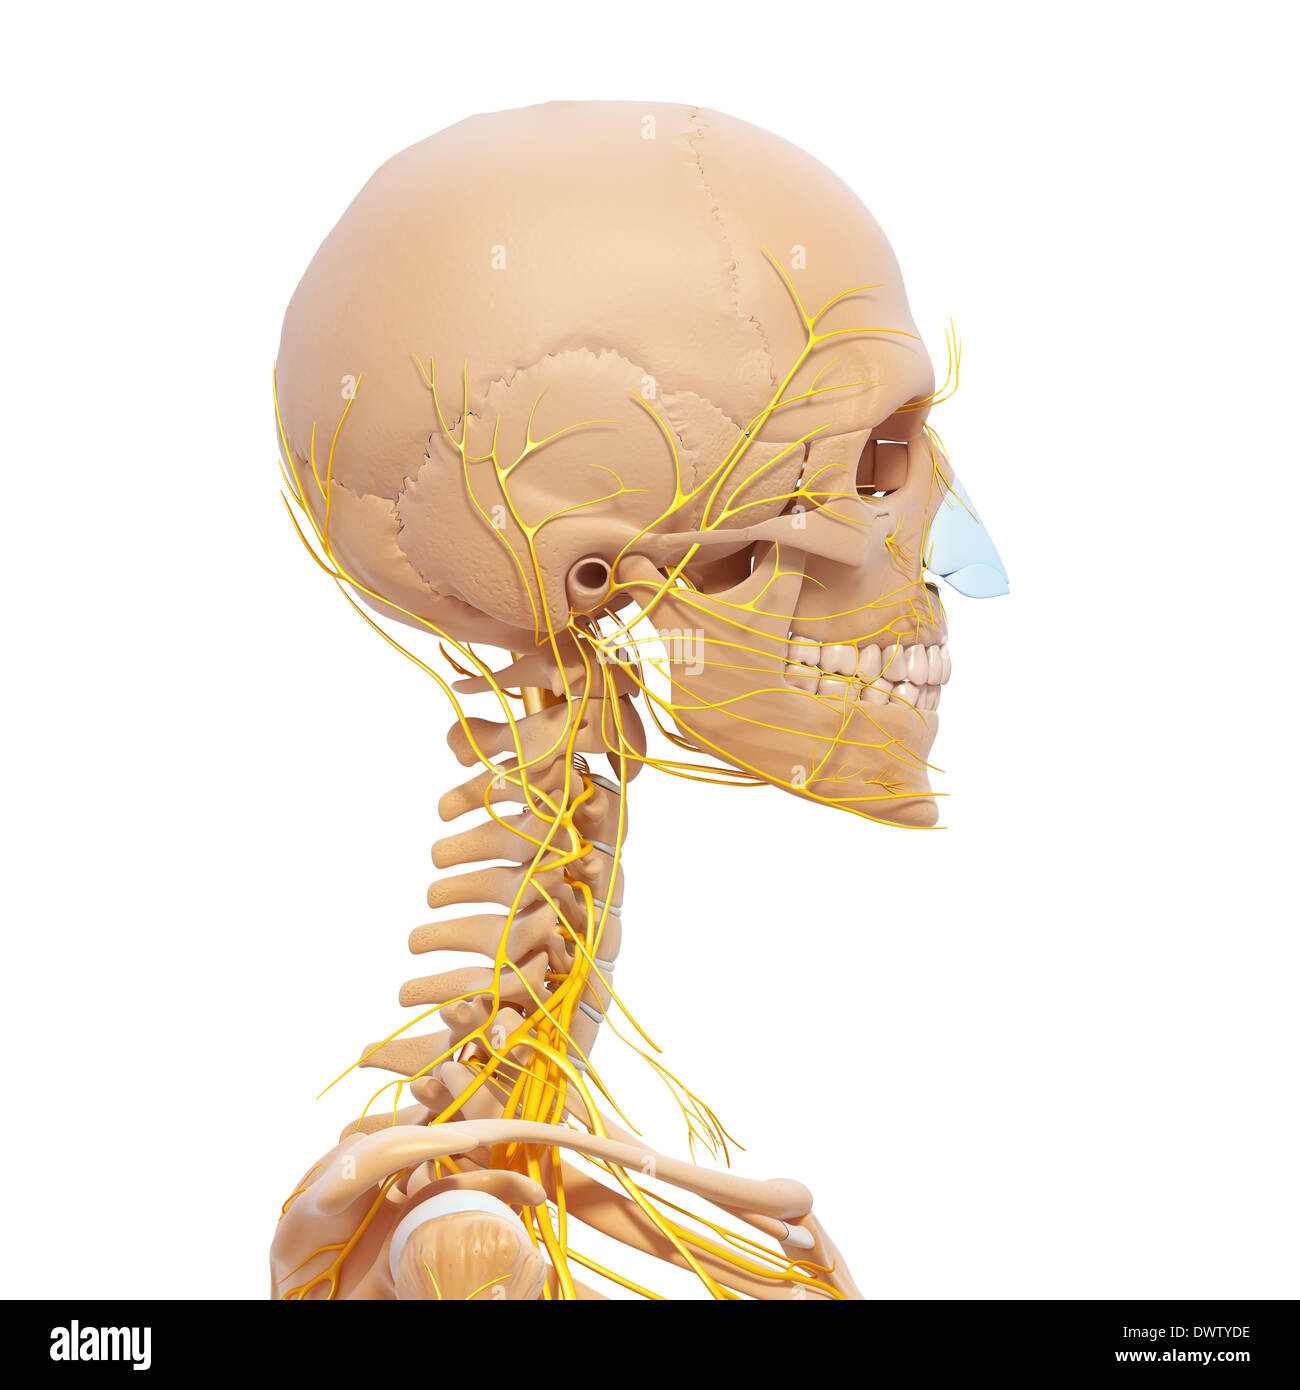 Peripheral nervous system head neck drawing Stock Photo: 67545898 ...